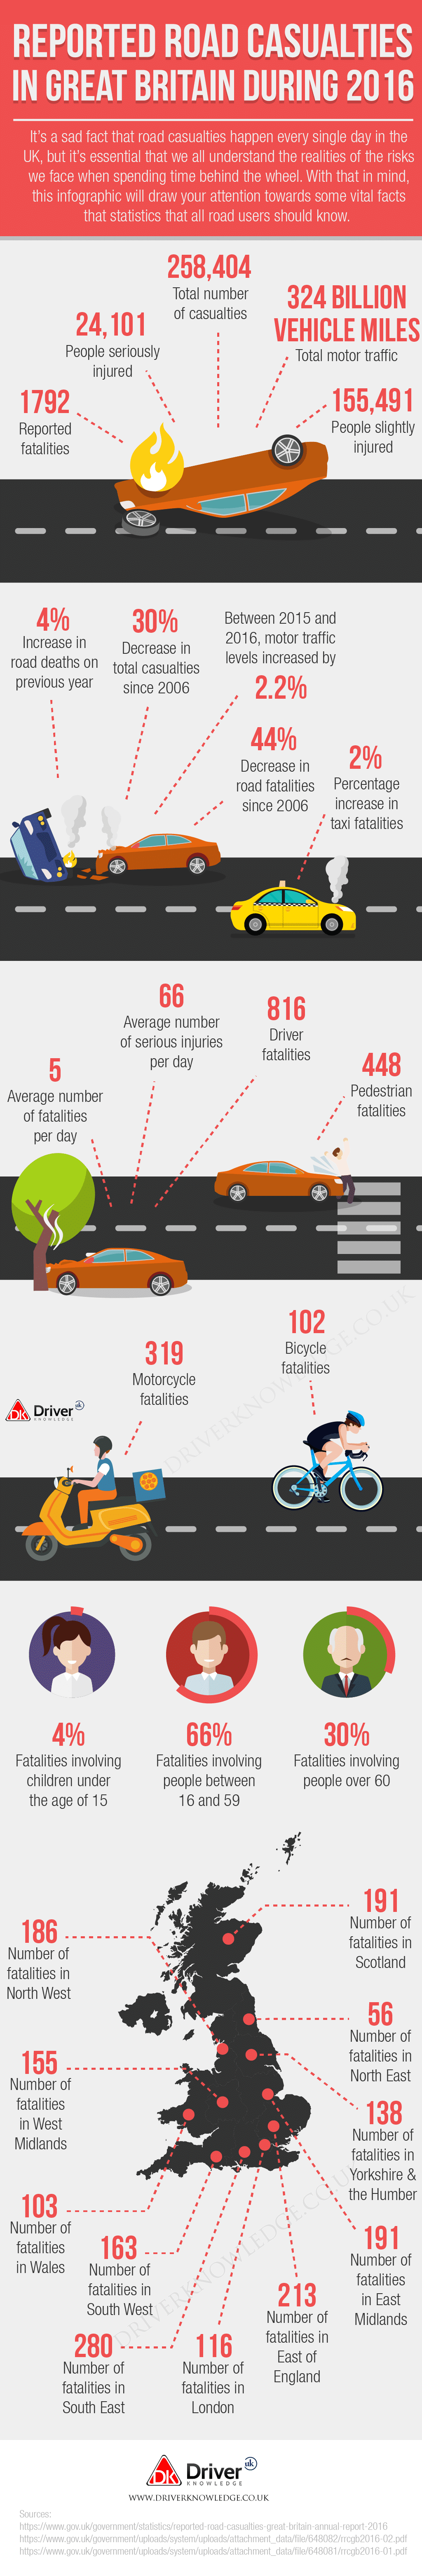 Road Casualties in Great Britain Infographic